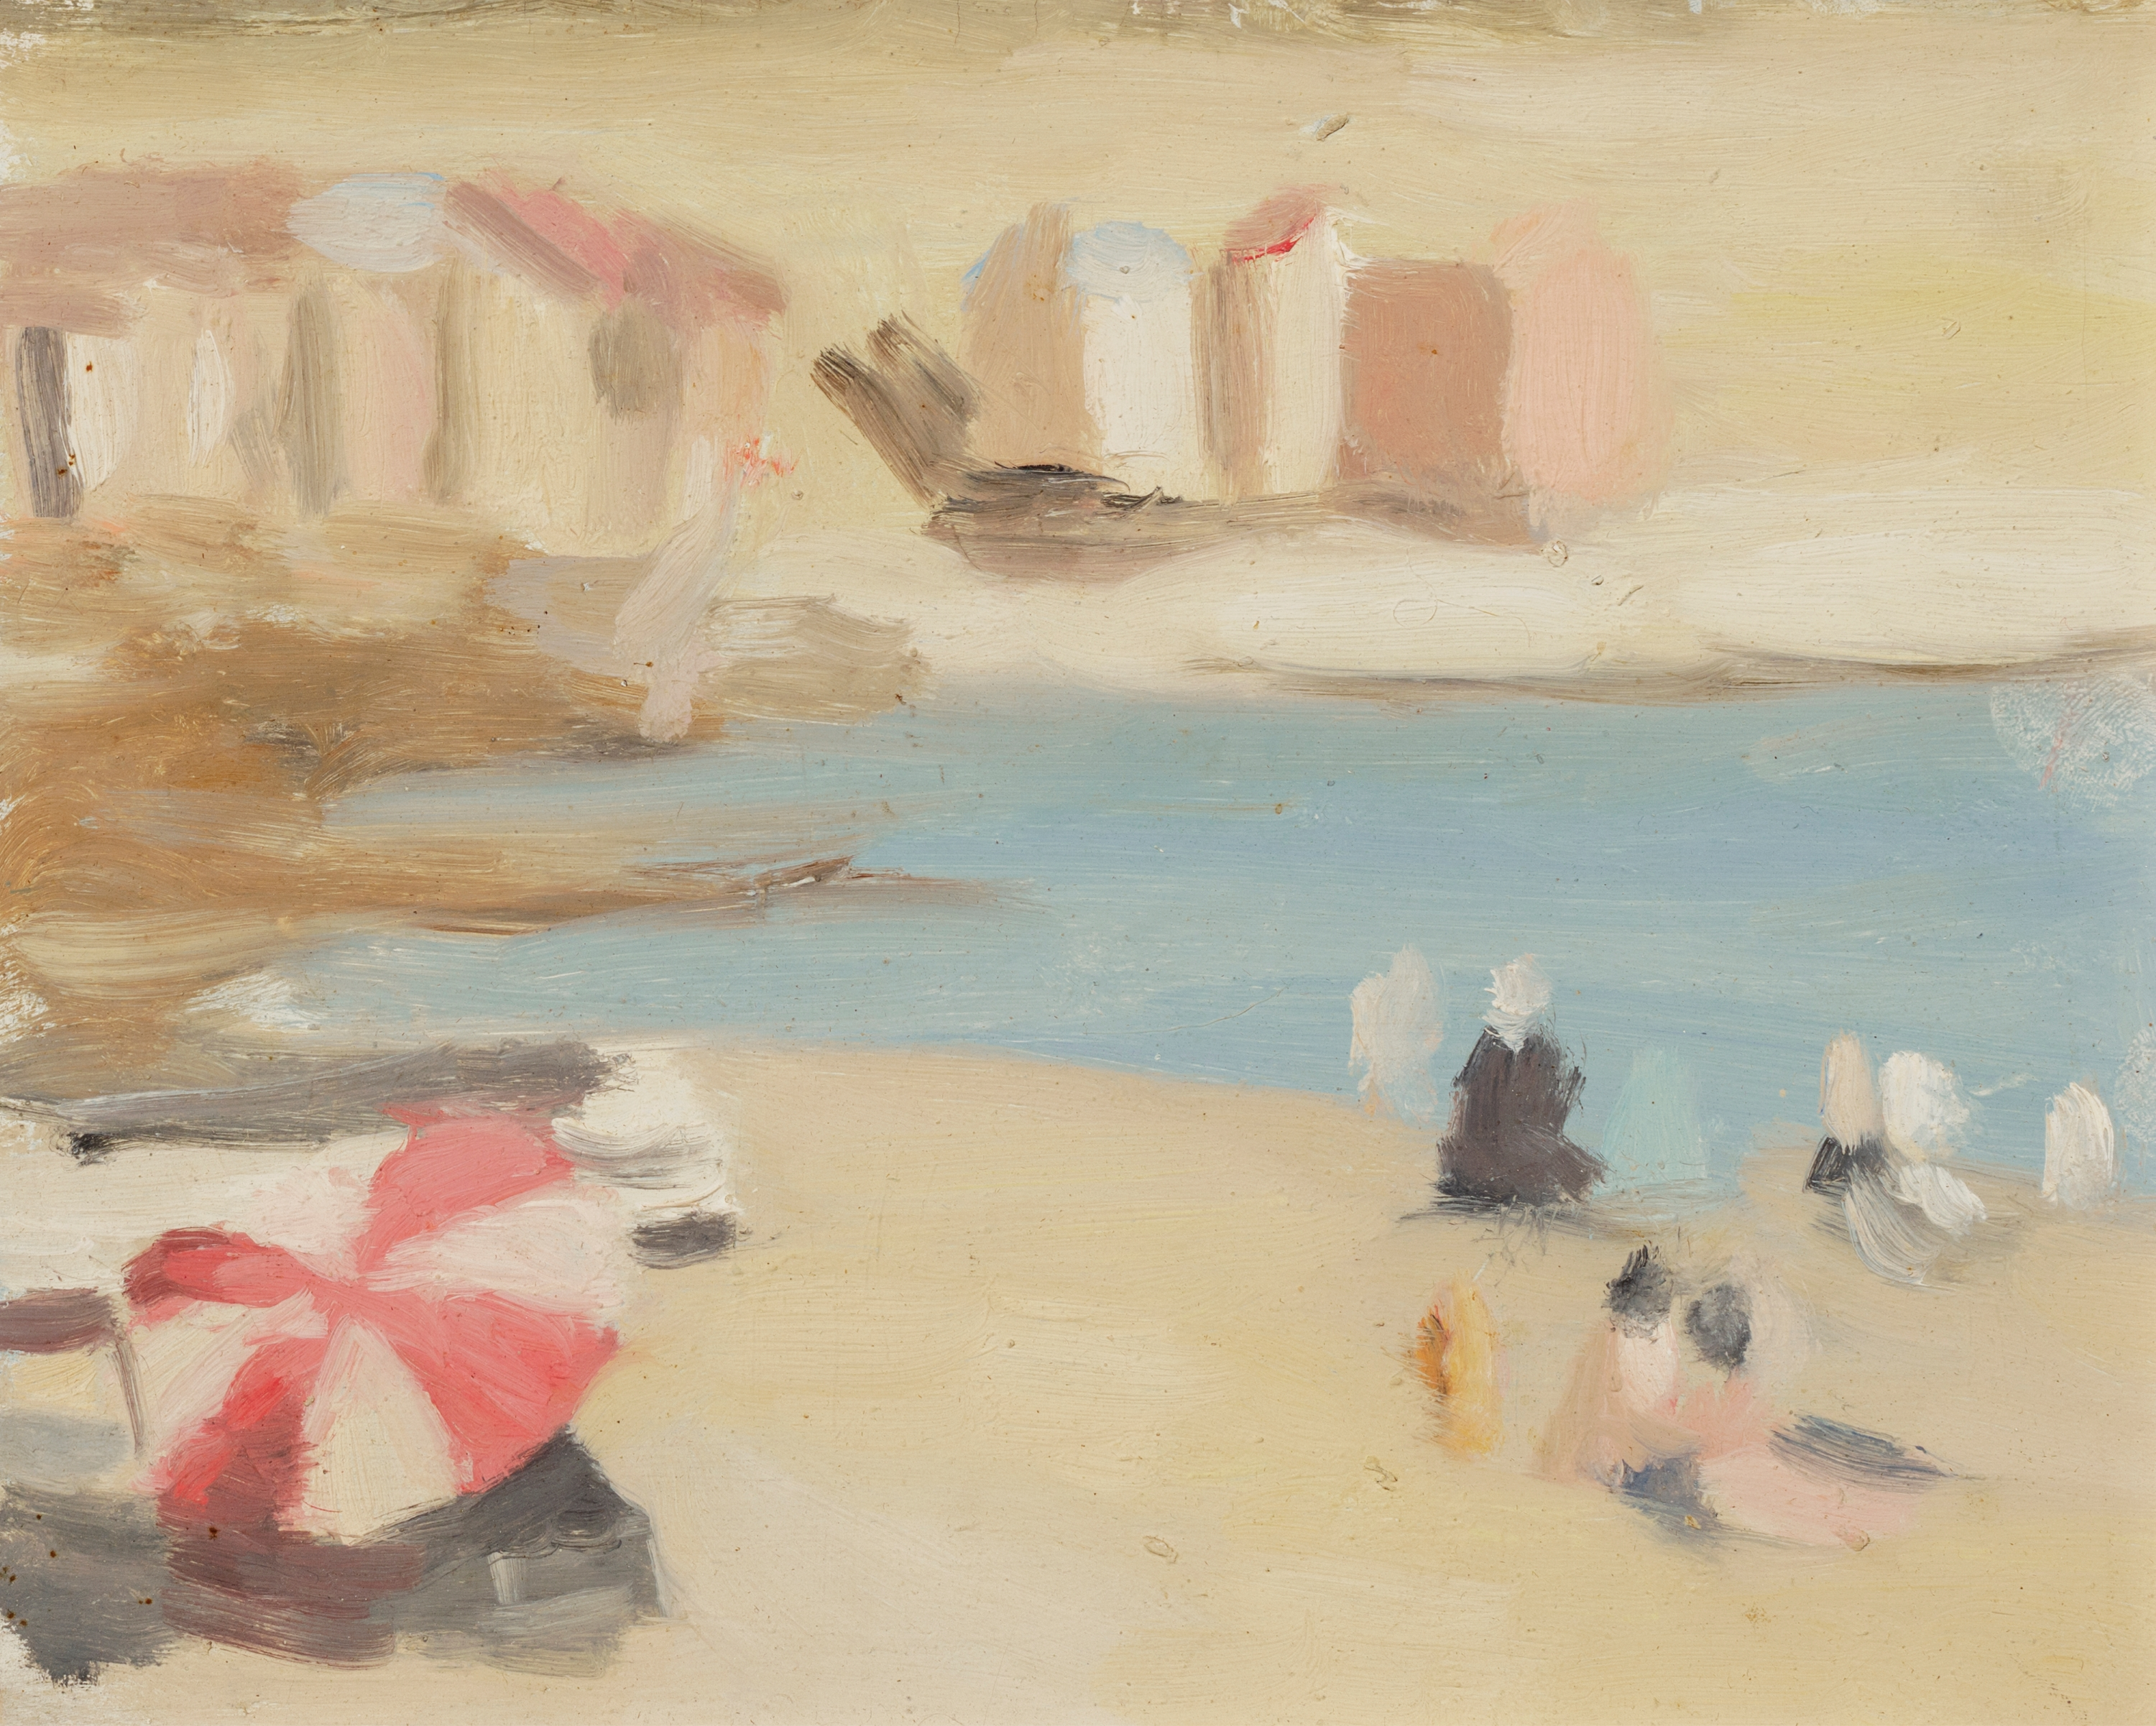 A painting by Clarice Beckett, blurry realism, of people and bathing boxes on Brighton Beach